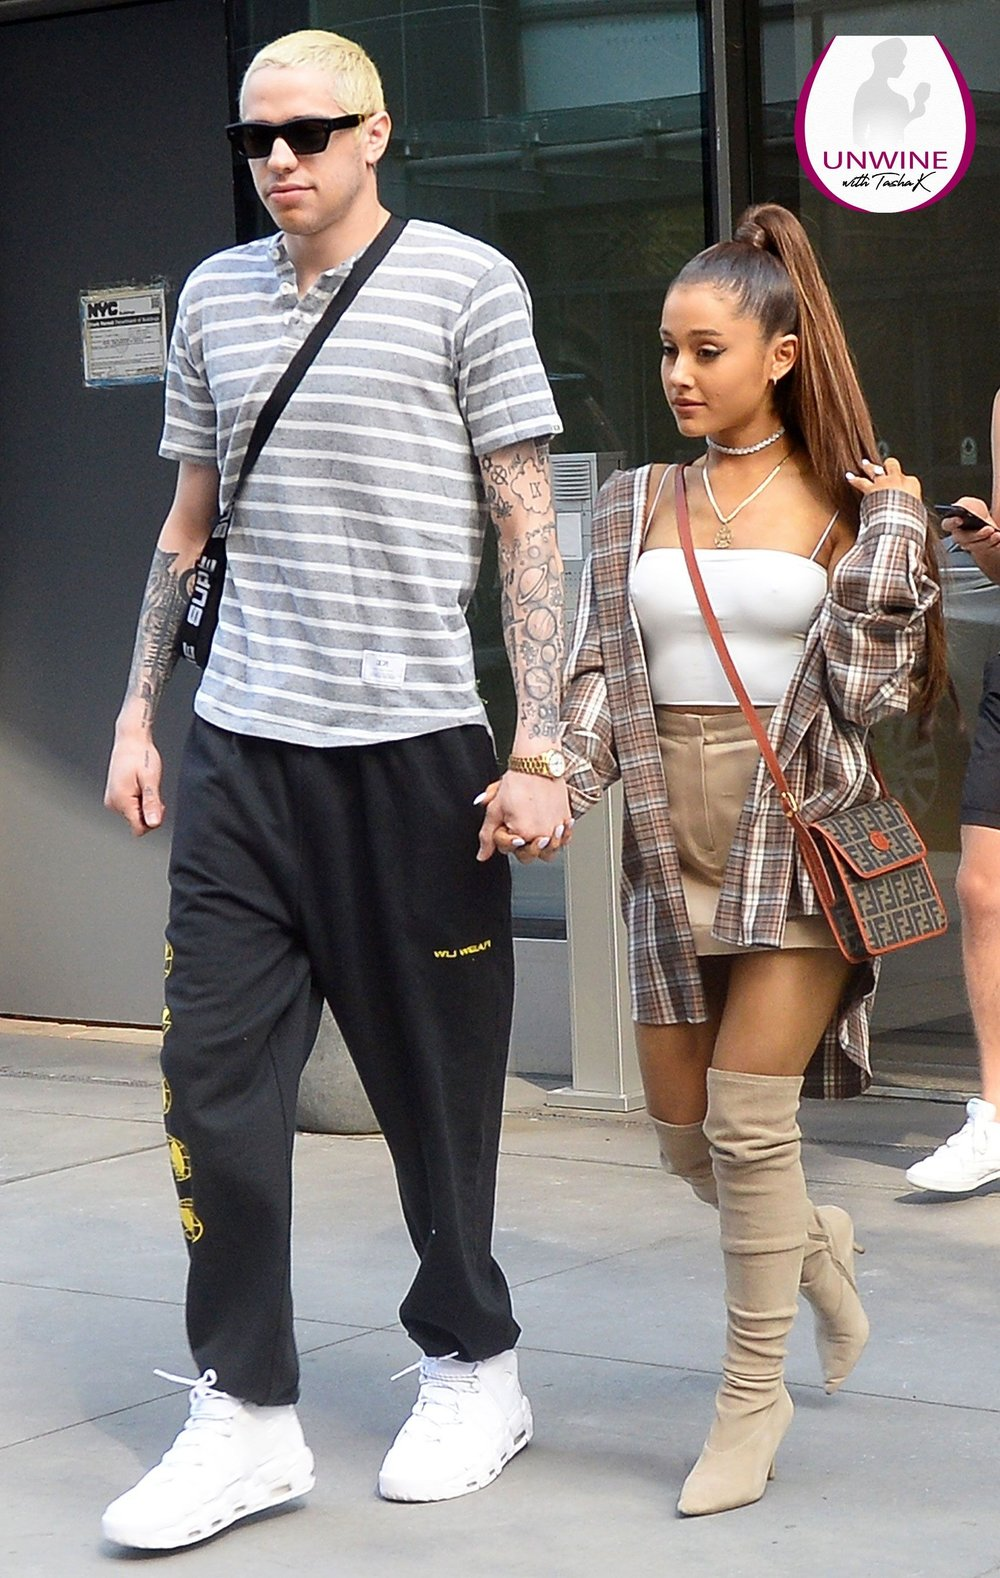 Ariana Grande And Pete Davidson Call Off Their Engagement And Ariana Gives Back Her Ring (1).jpg